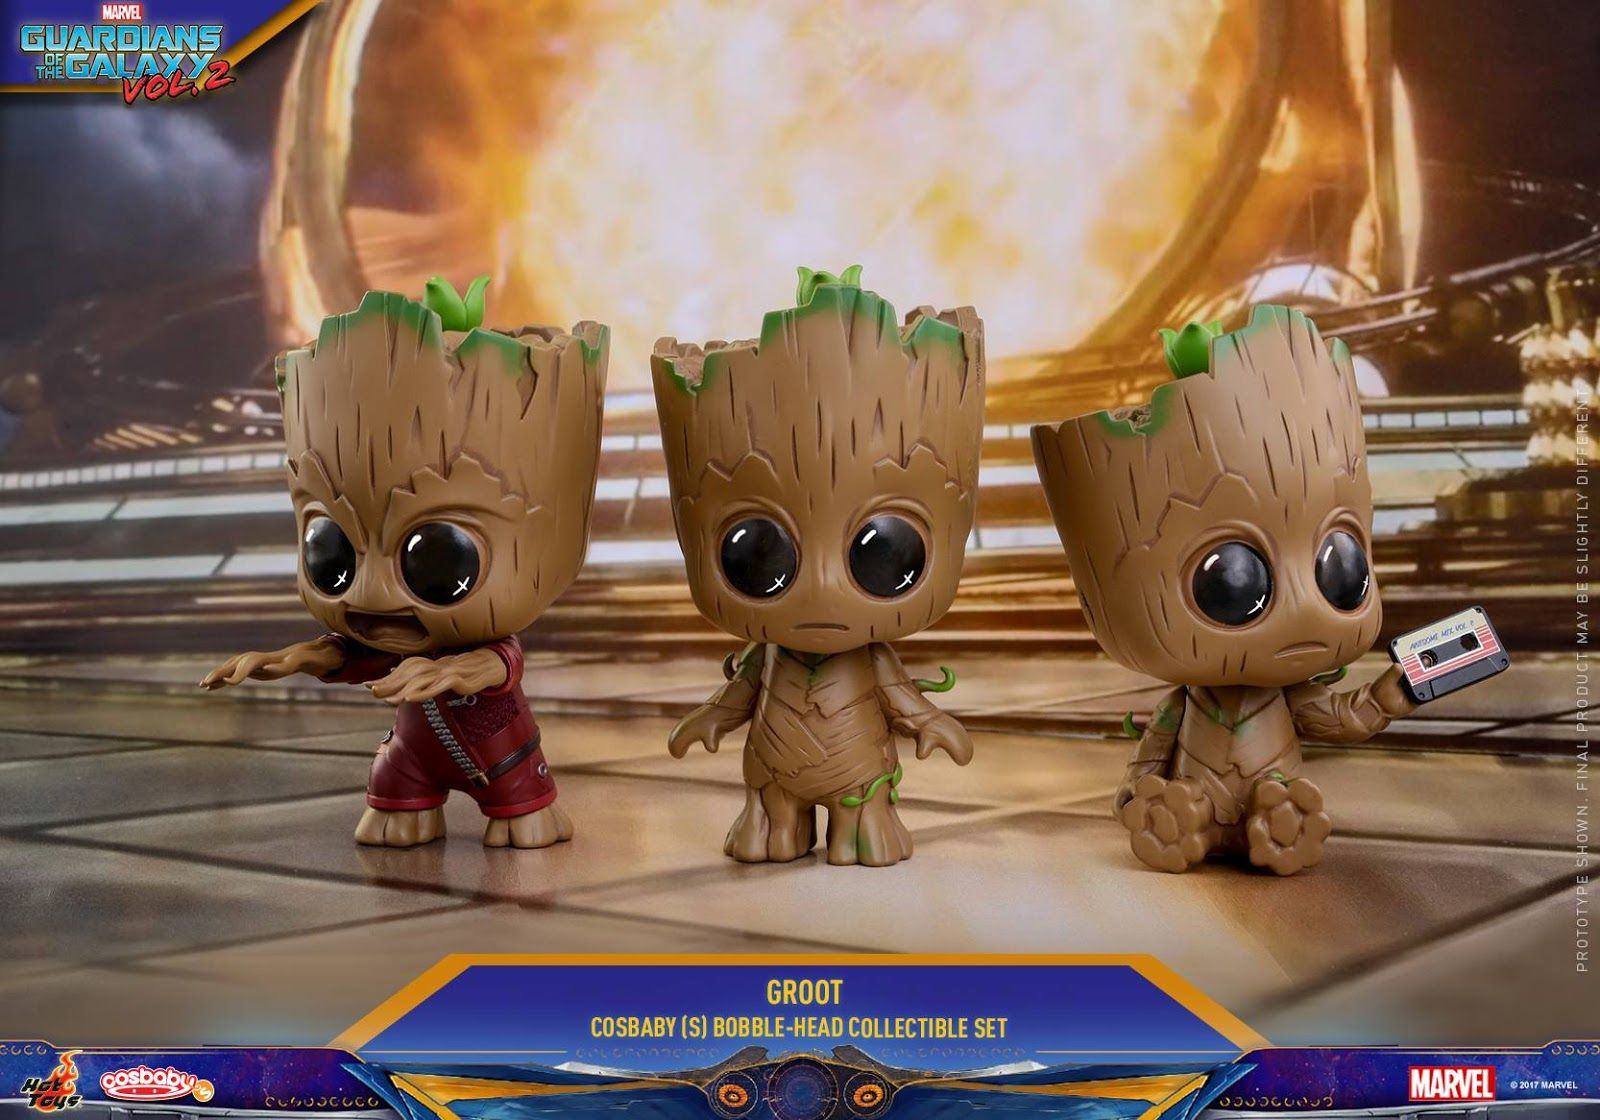 Guardians of the Galaxy Vol 2 Cosbaby Groot Bobble-Head PVC Figure New In Box